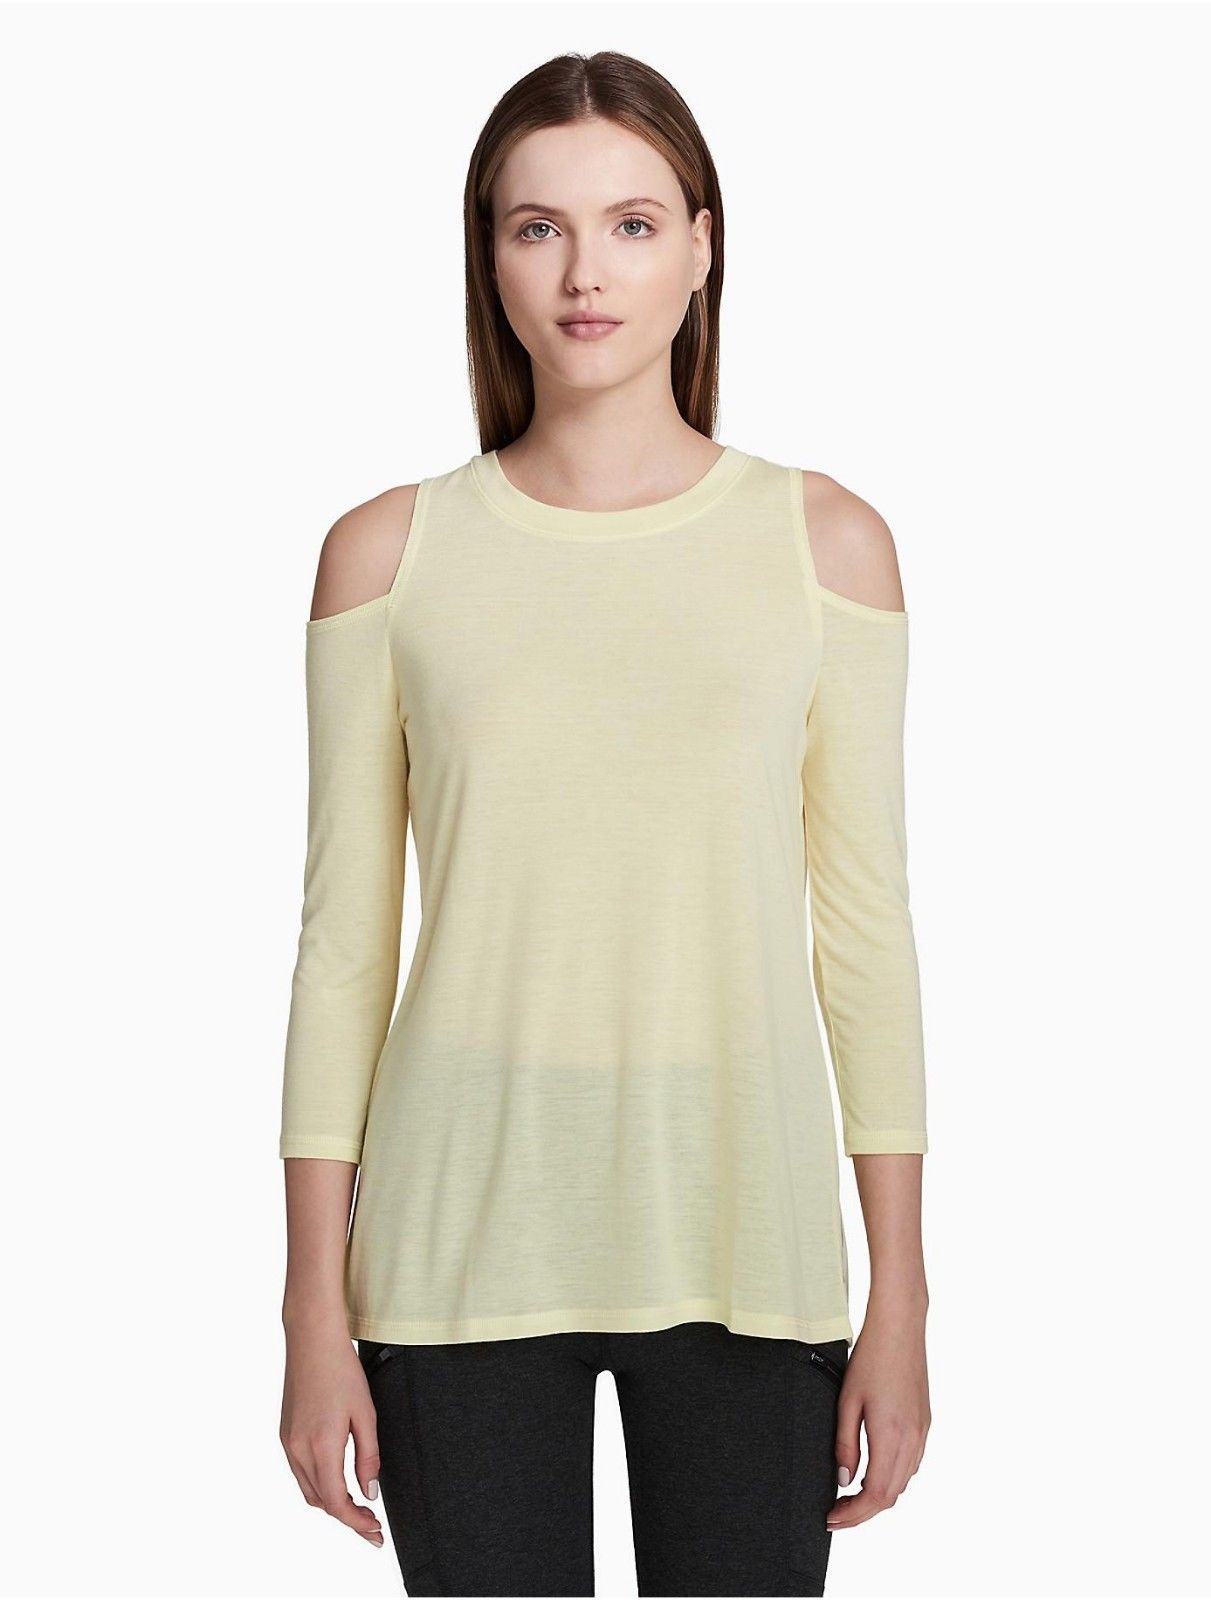 Calvin Klein Performance Cold-Shoulder Tie-Back Top PF8T2828 Grey Citrus Yellow image 3